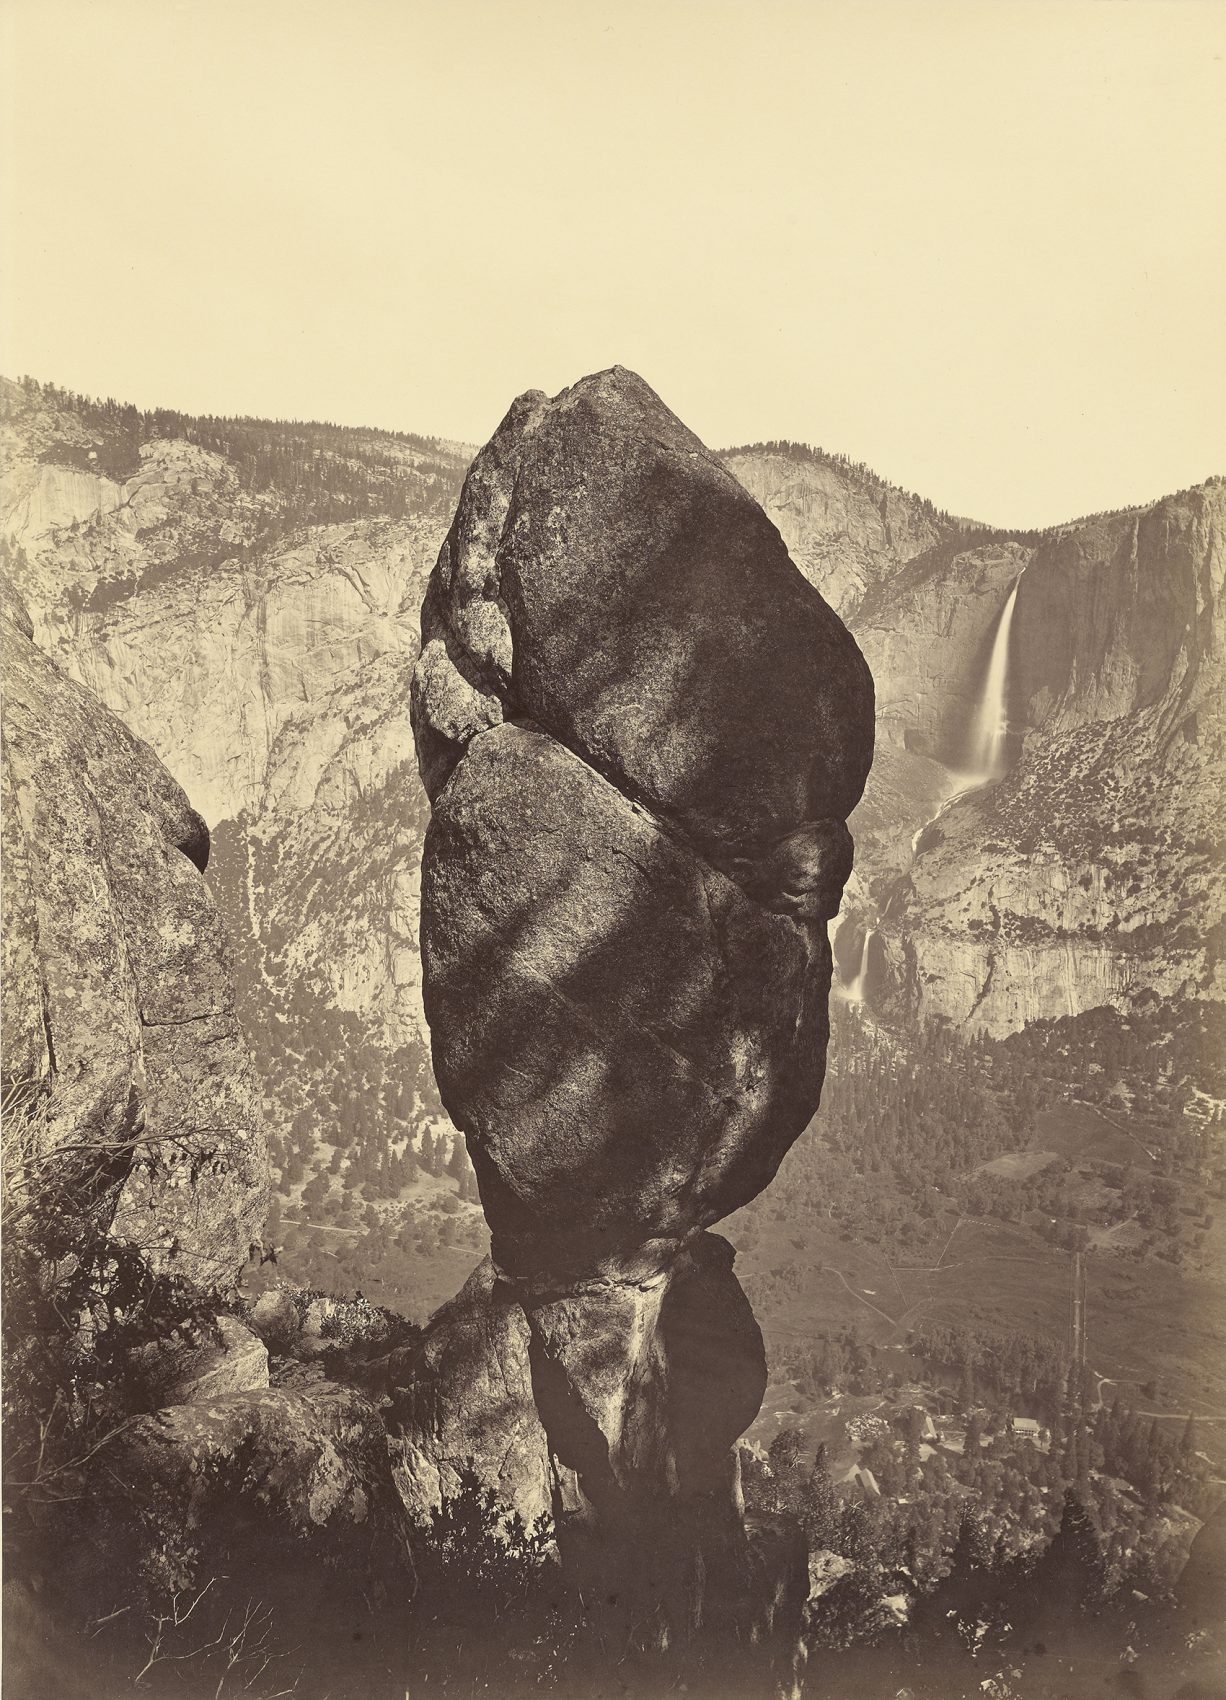 Agassiz Rock and the Yosemite Falls, from Union Point, taken about 1878. (Carleton Watkins/Courtesy J. Paul Getty Museum, Los Angeles)